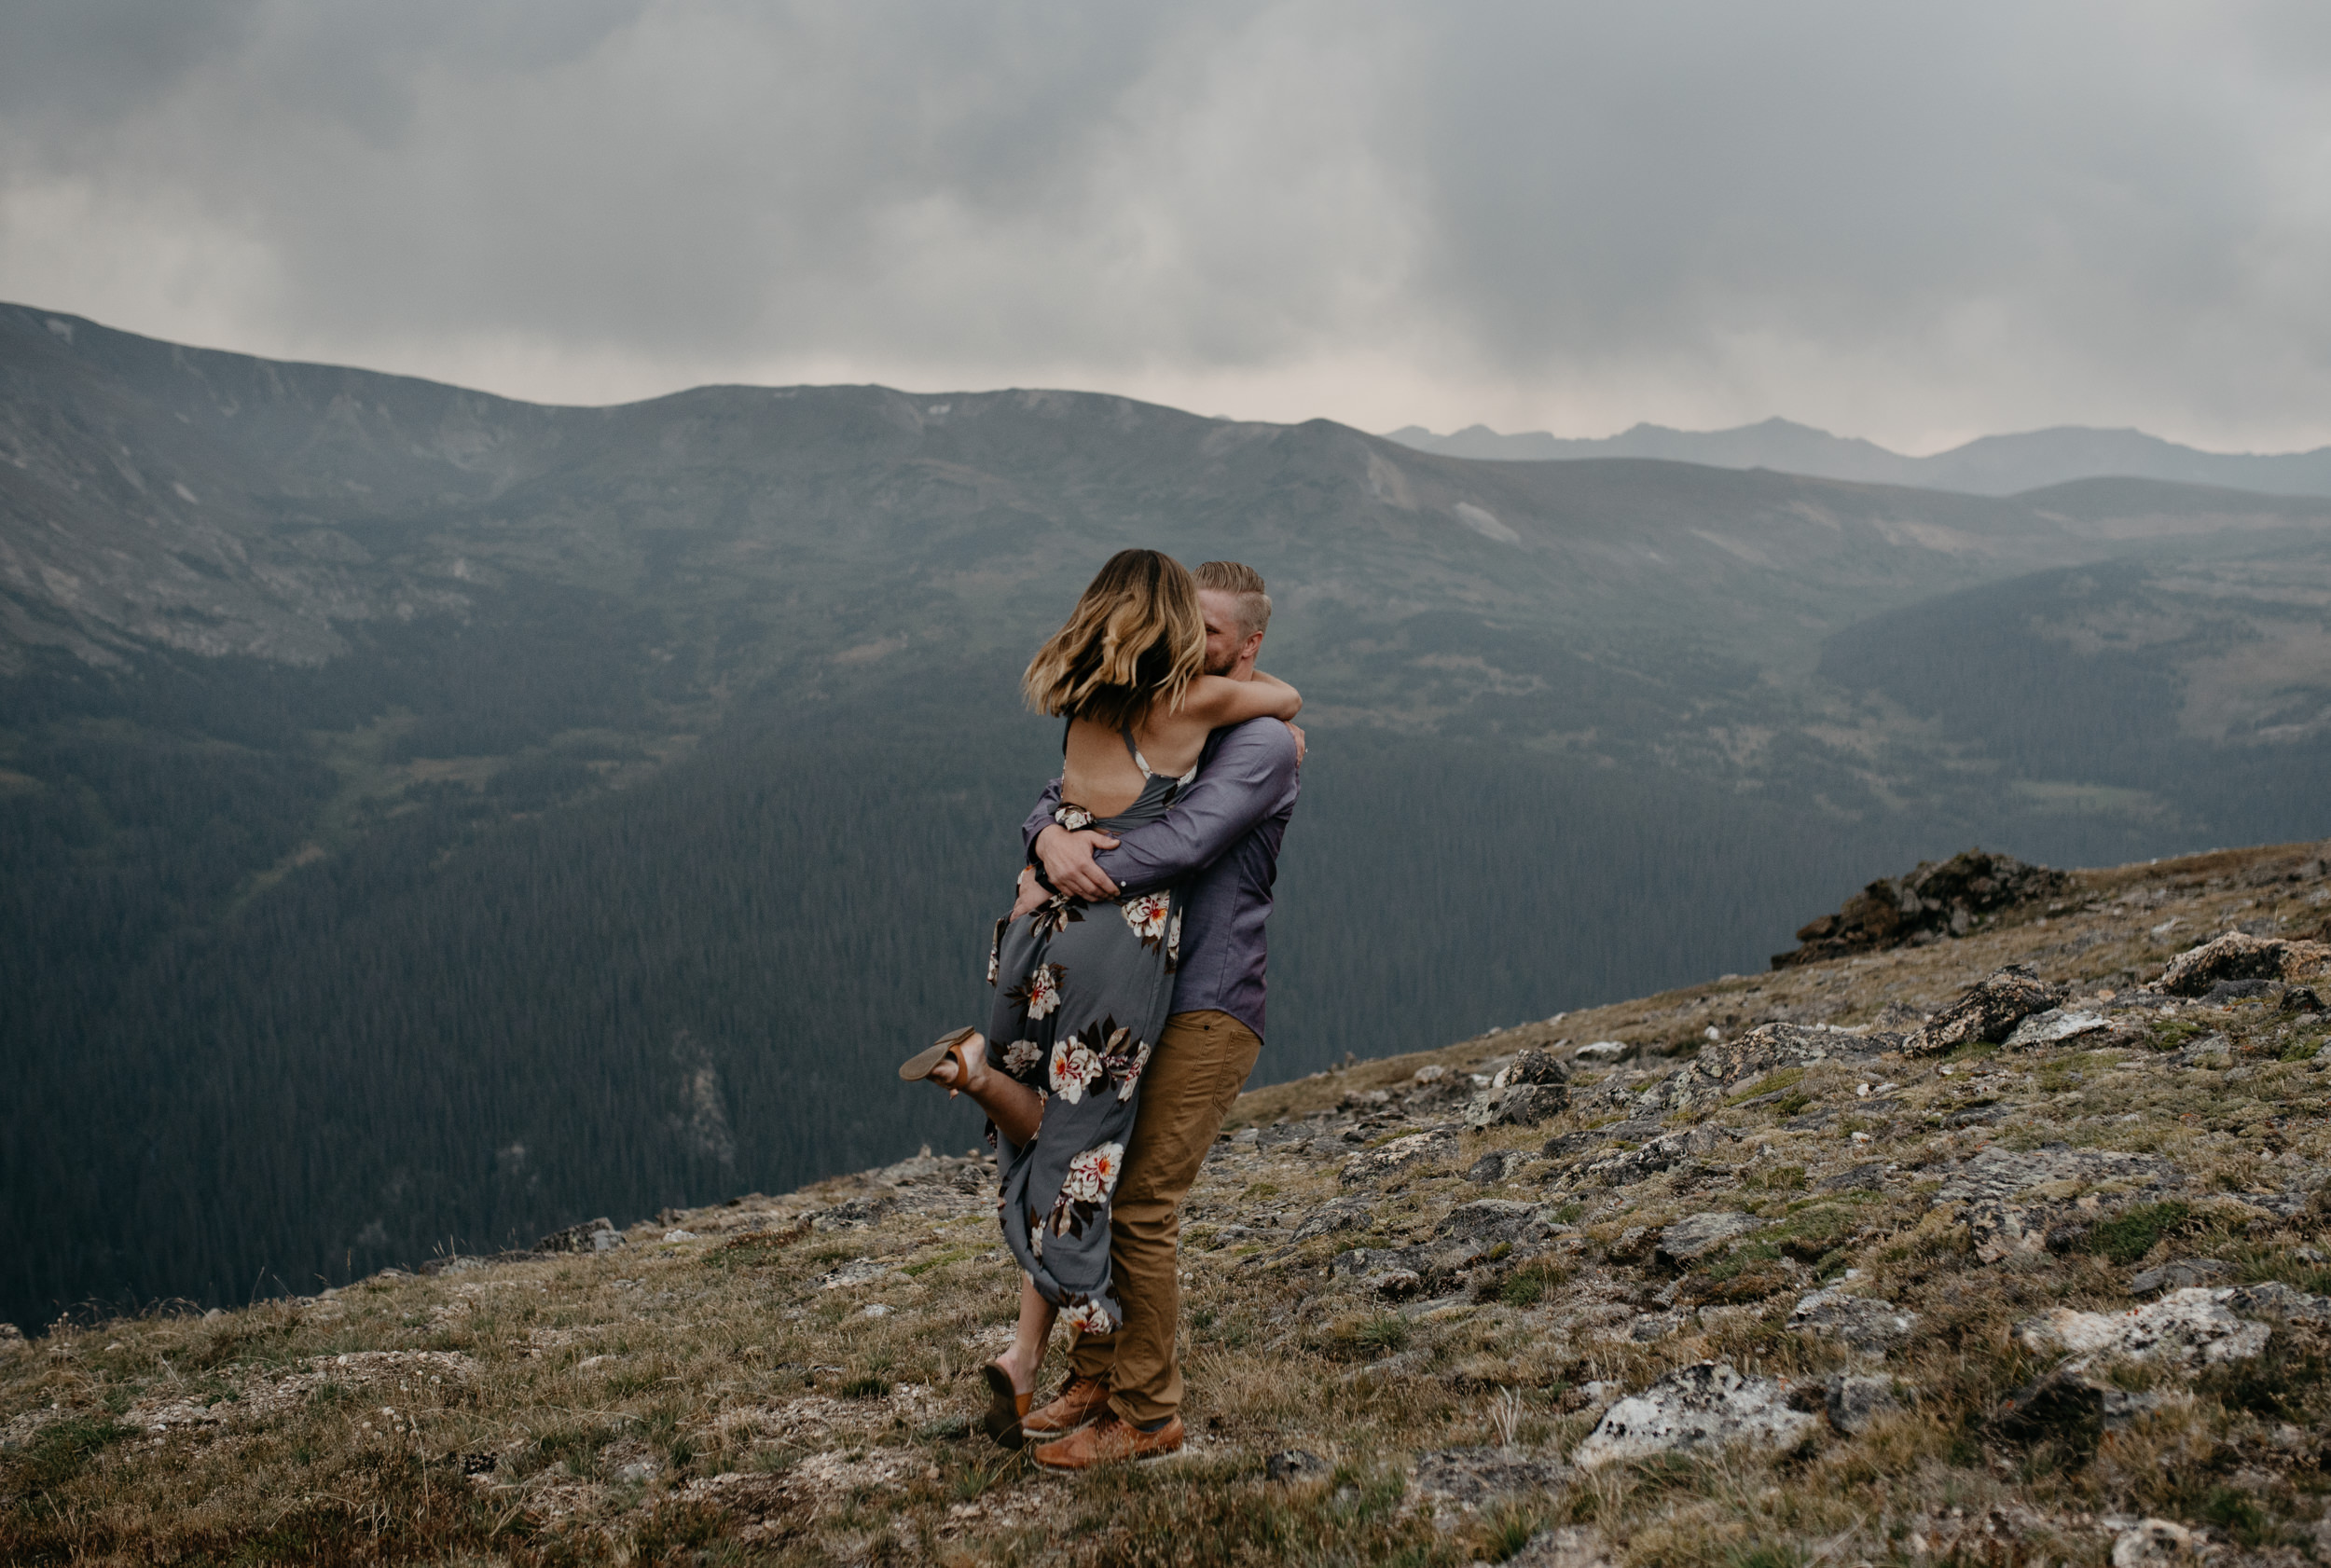 Mountaintop elopement in the Rocky Mountains. Colorado wedding and elopement photographer.